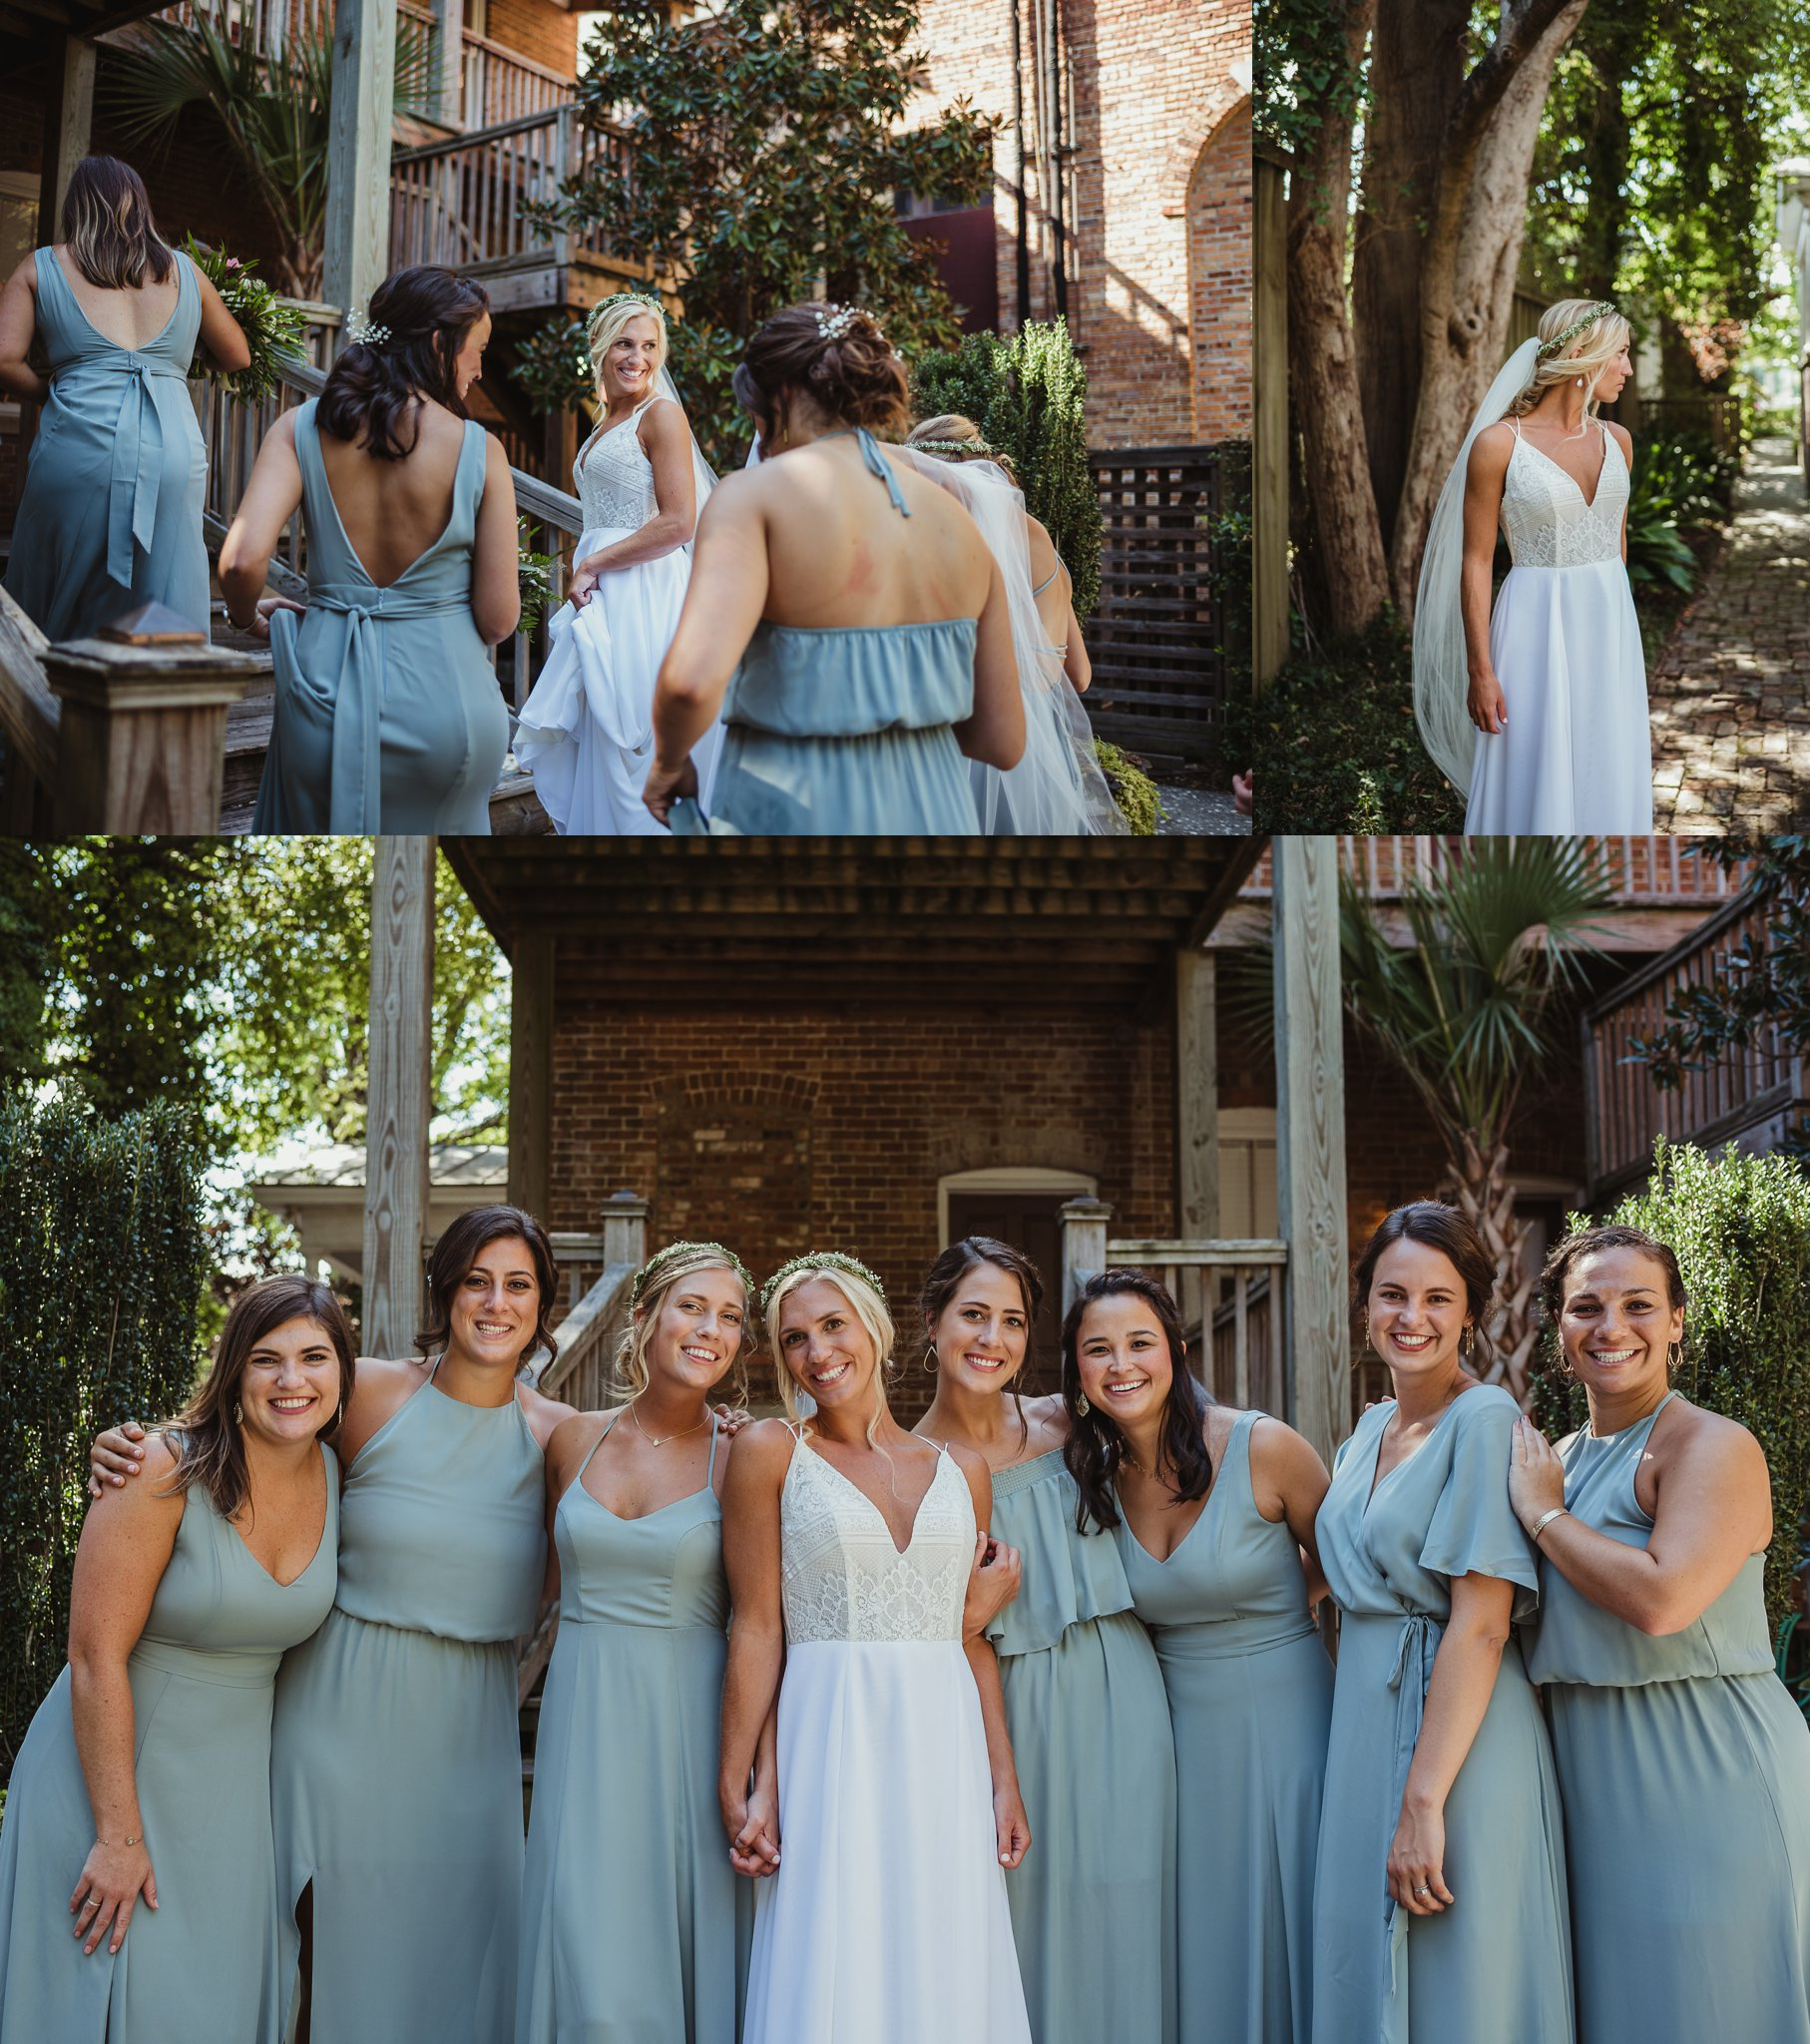 The bride poses outside with her bridesmaids before her wedding in Wilmington, NC, photos by Rose Trail Images.